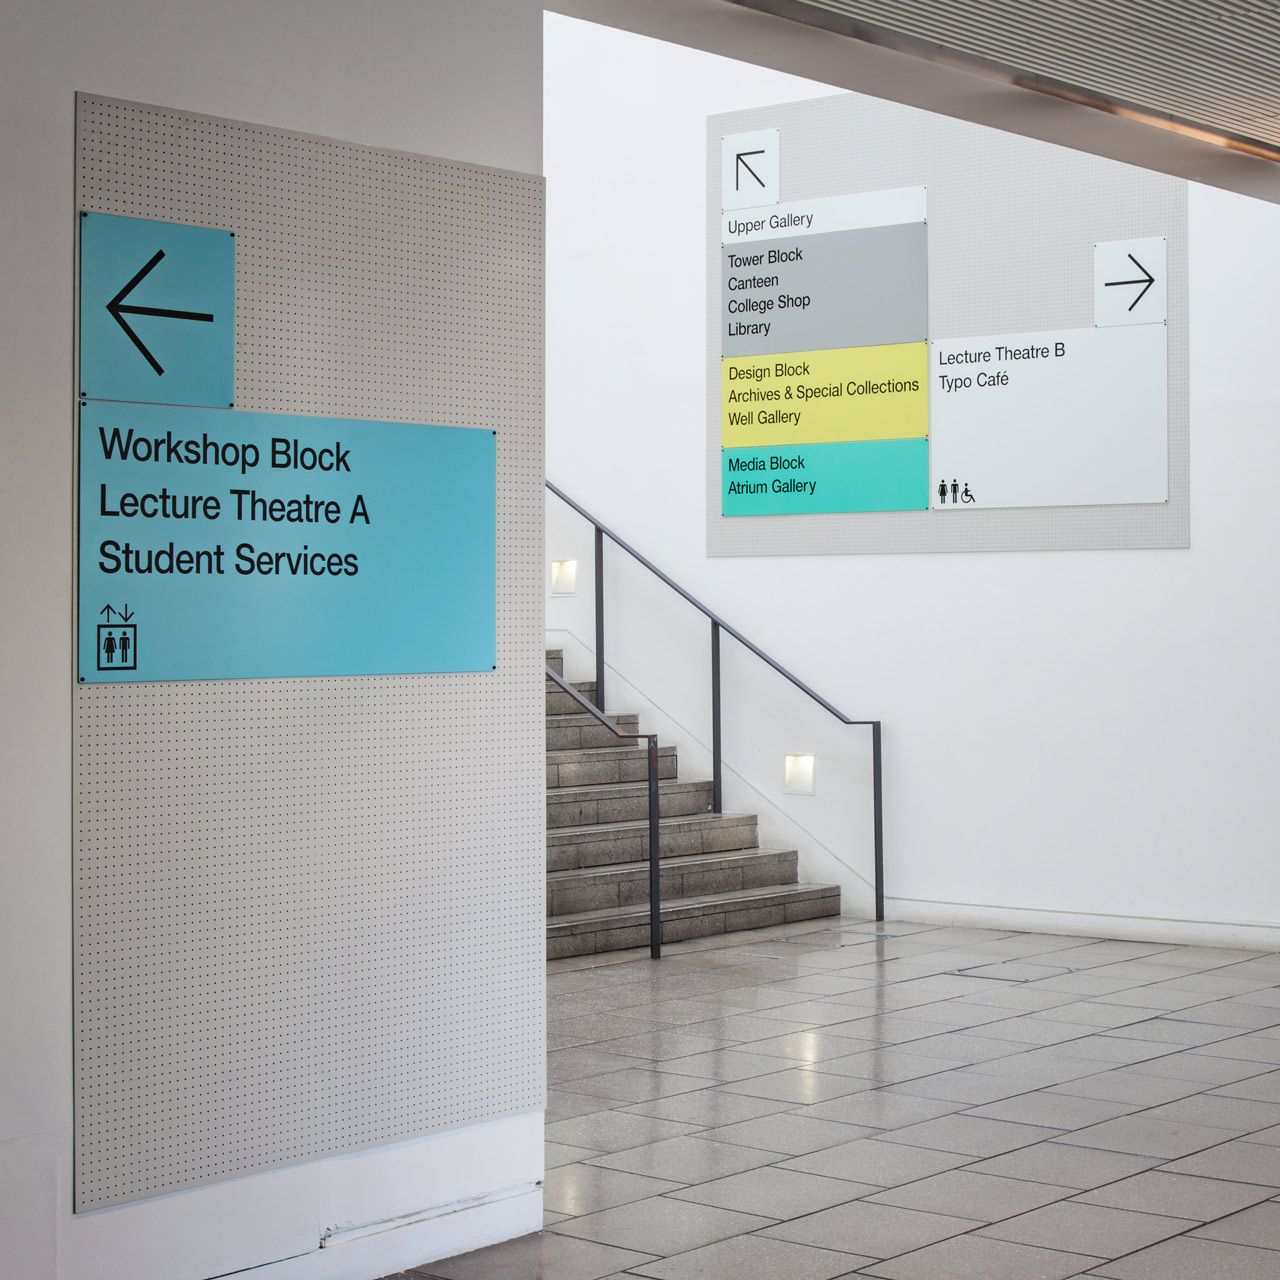 LCC Wayfinding by Pentagram This is where I went to grad school